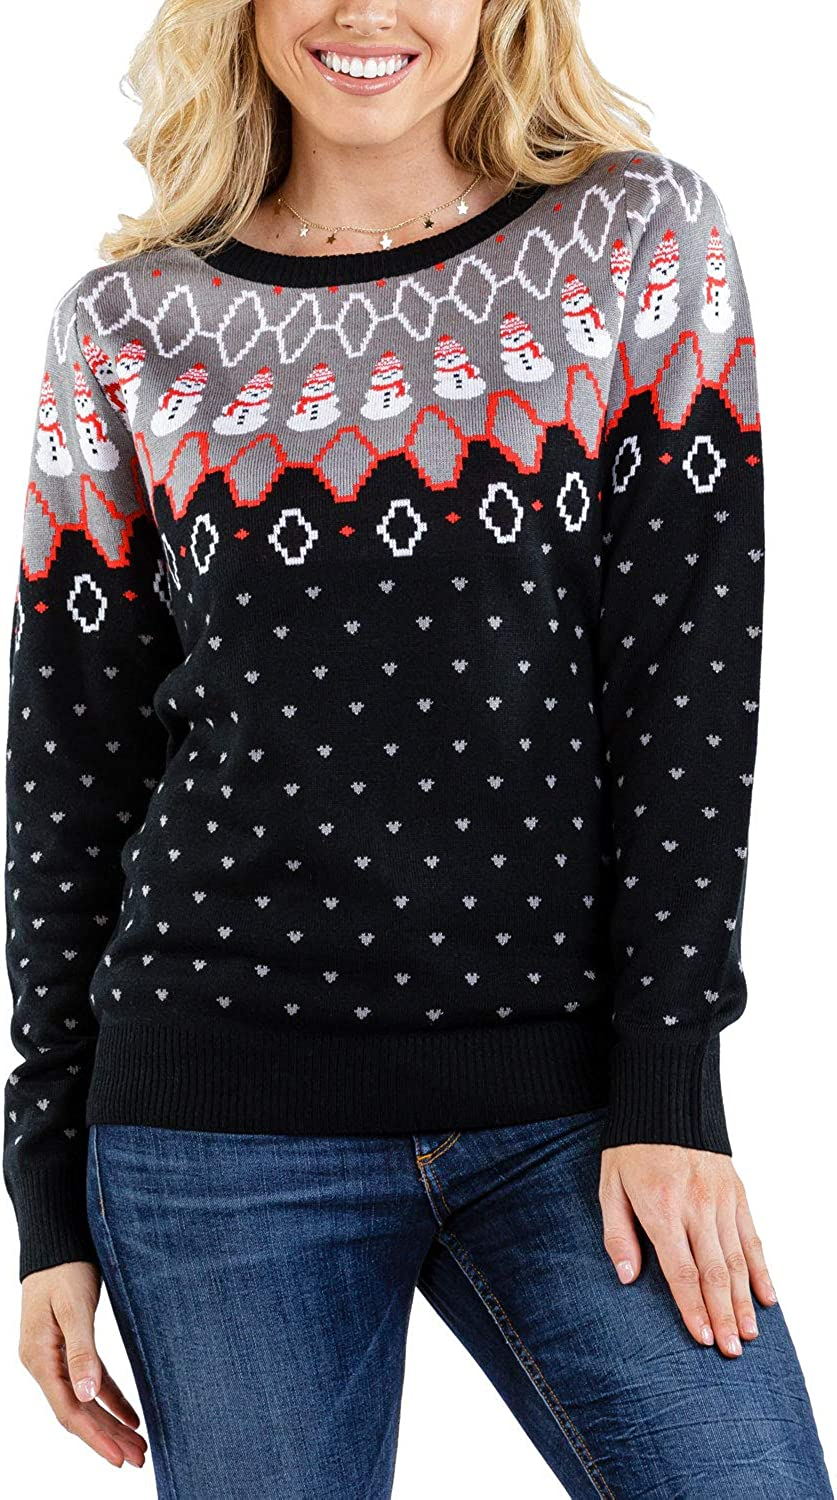 Women's Indianapolis Mall Stylish Christmas Sweaters - Holiday C for Cute Max 70% OFF